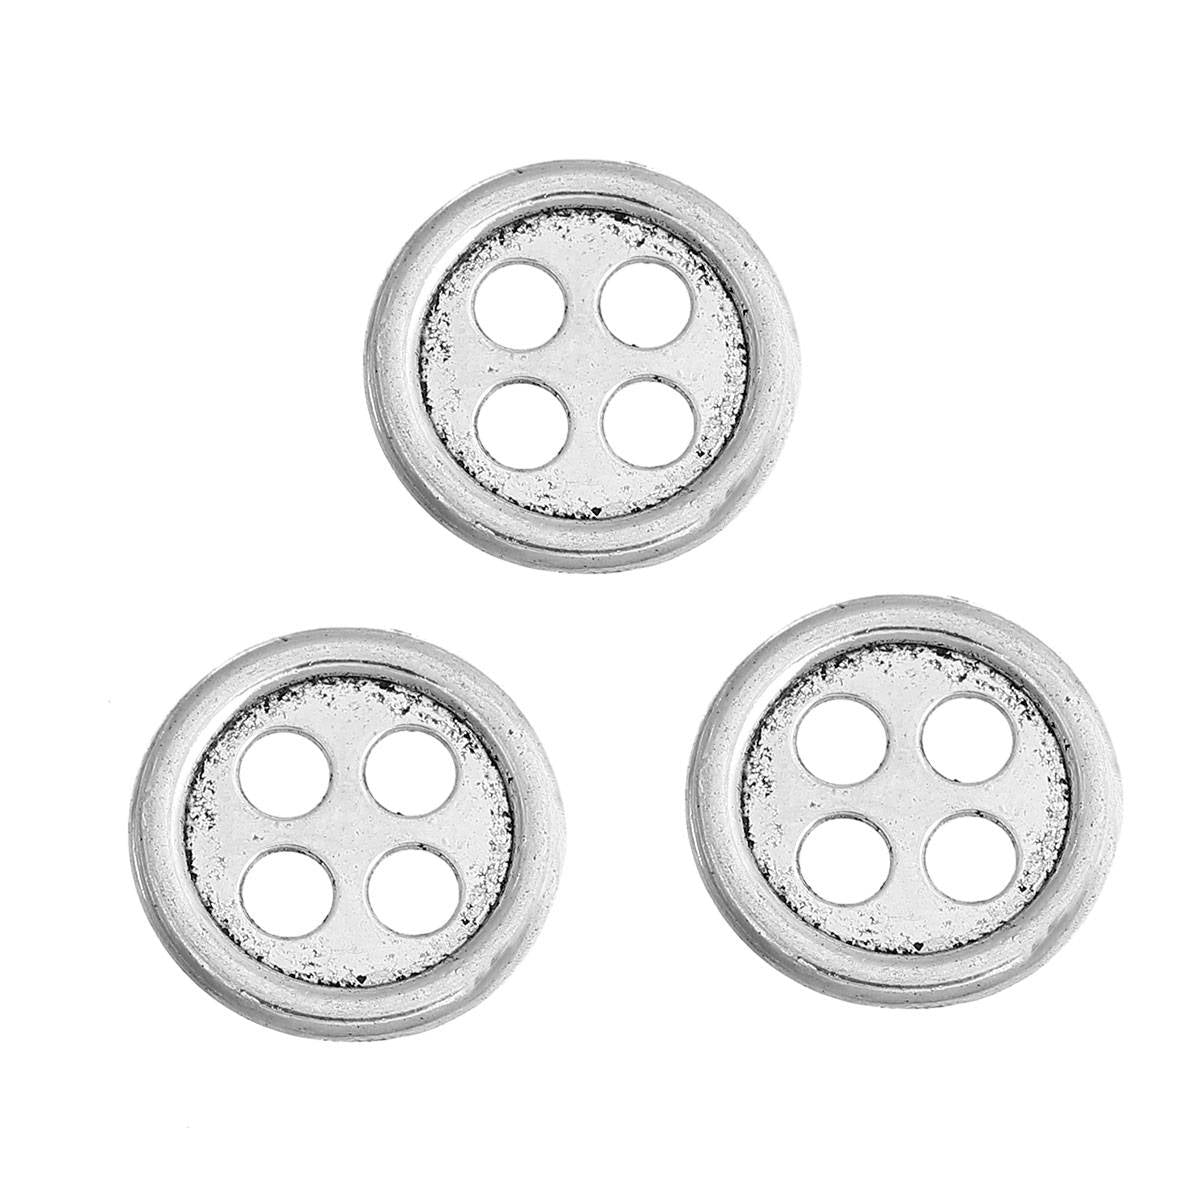 5 Metal Sewing Buttons - Round Antique Silver - Metallic Buttons - Button Clasp - 4 Holes